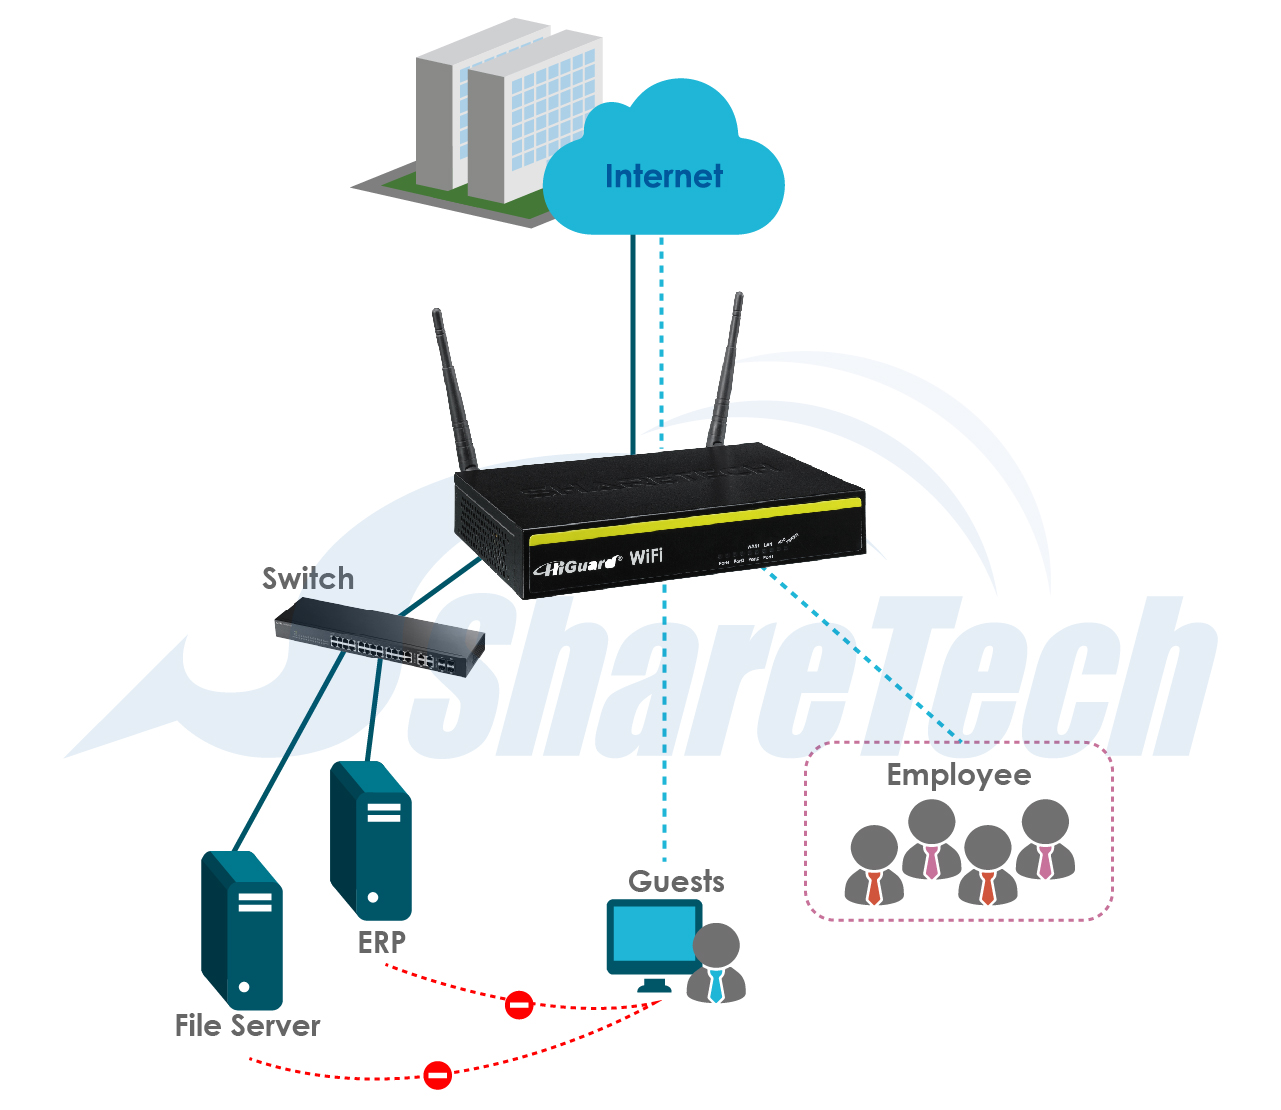 Ect Courses Environmental Control Technology Hvacr Digital Security Controls Wiring Diagram Description Installation And Use Of Common System Networks Practices For The Some Standards